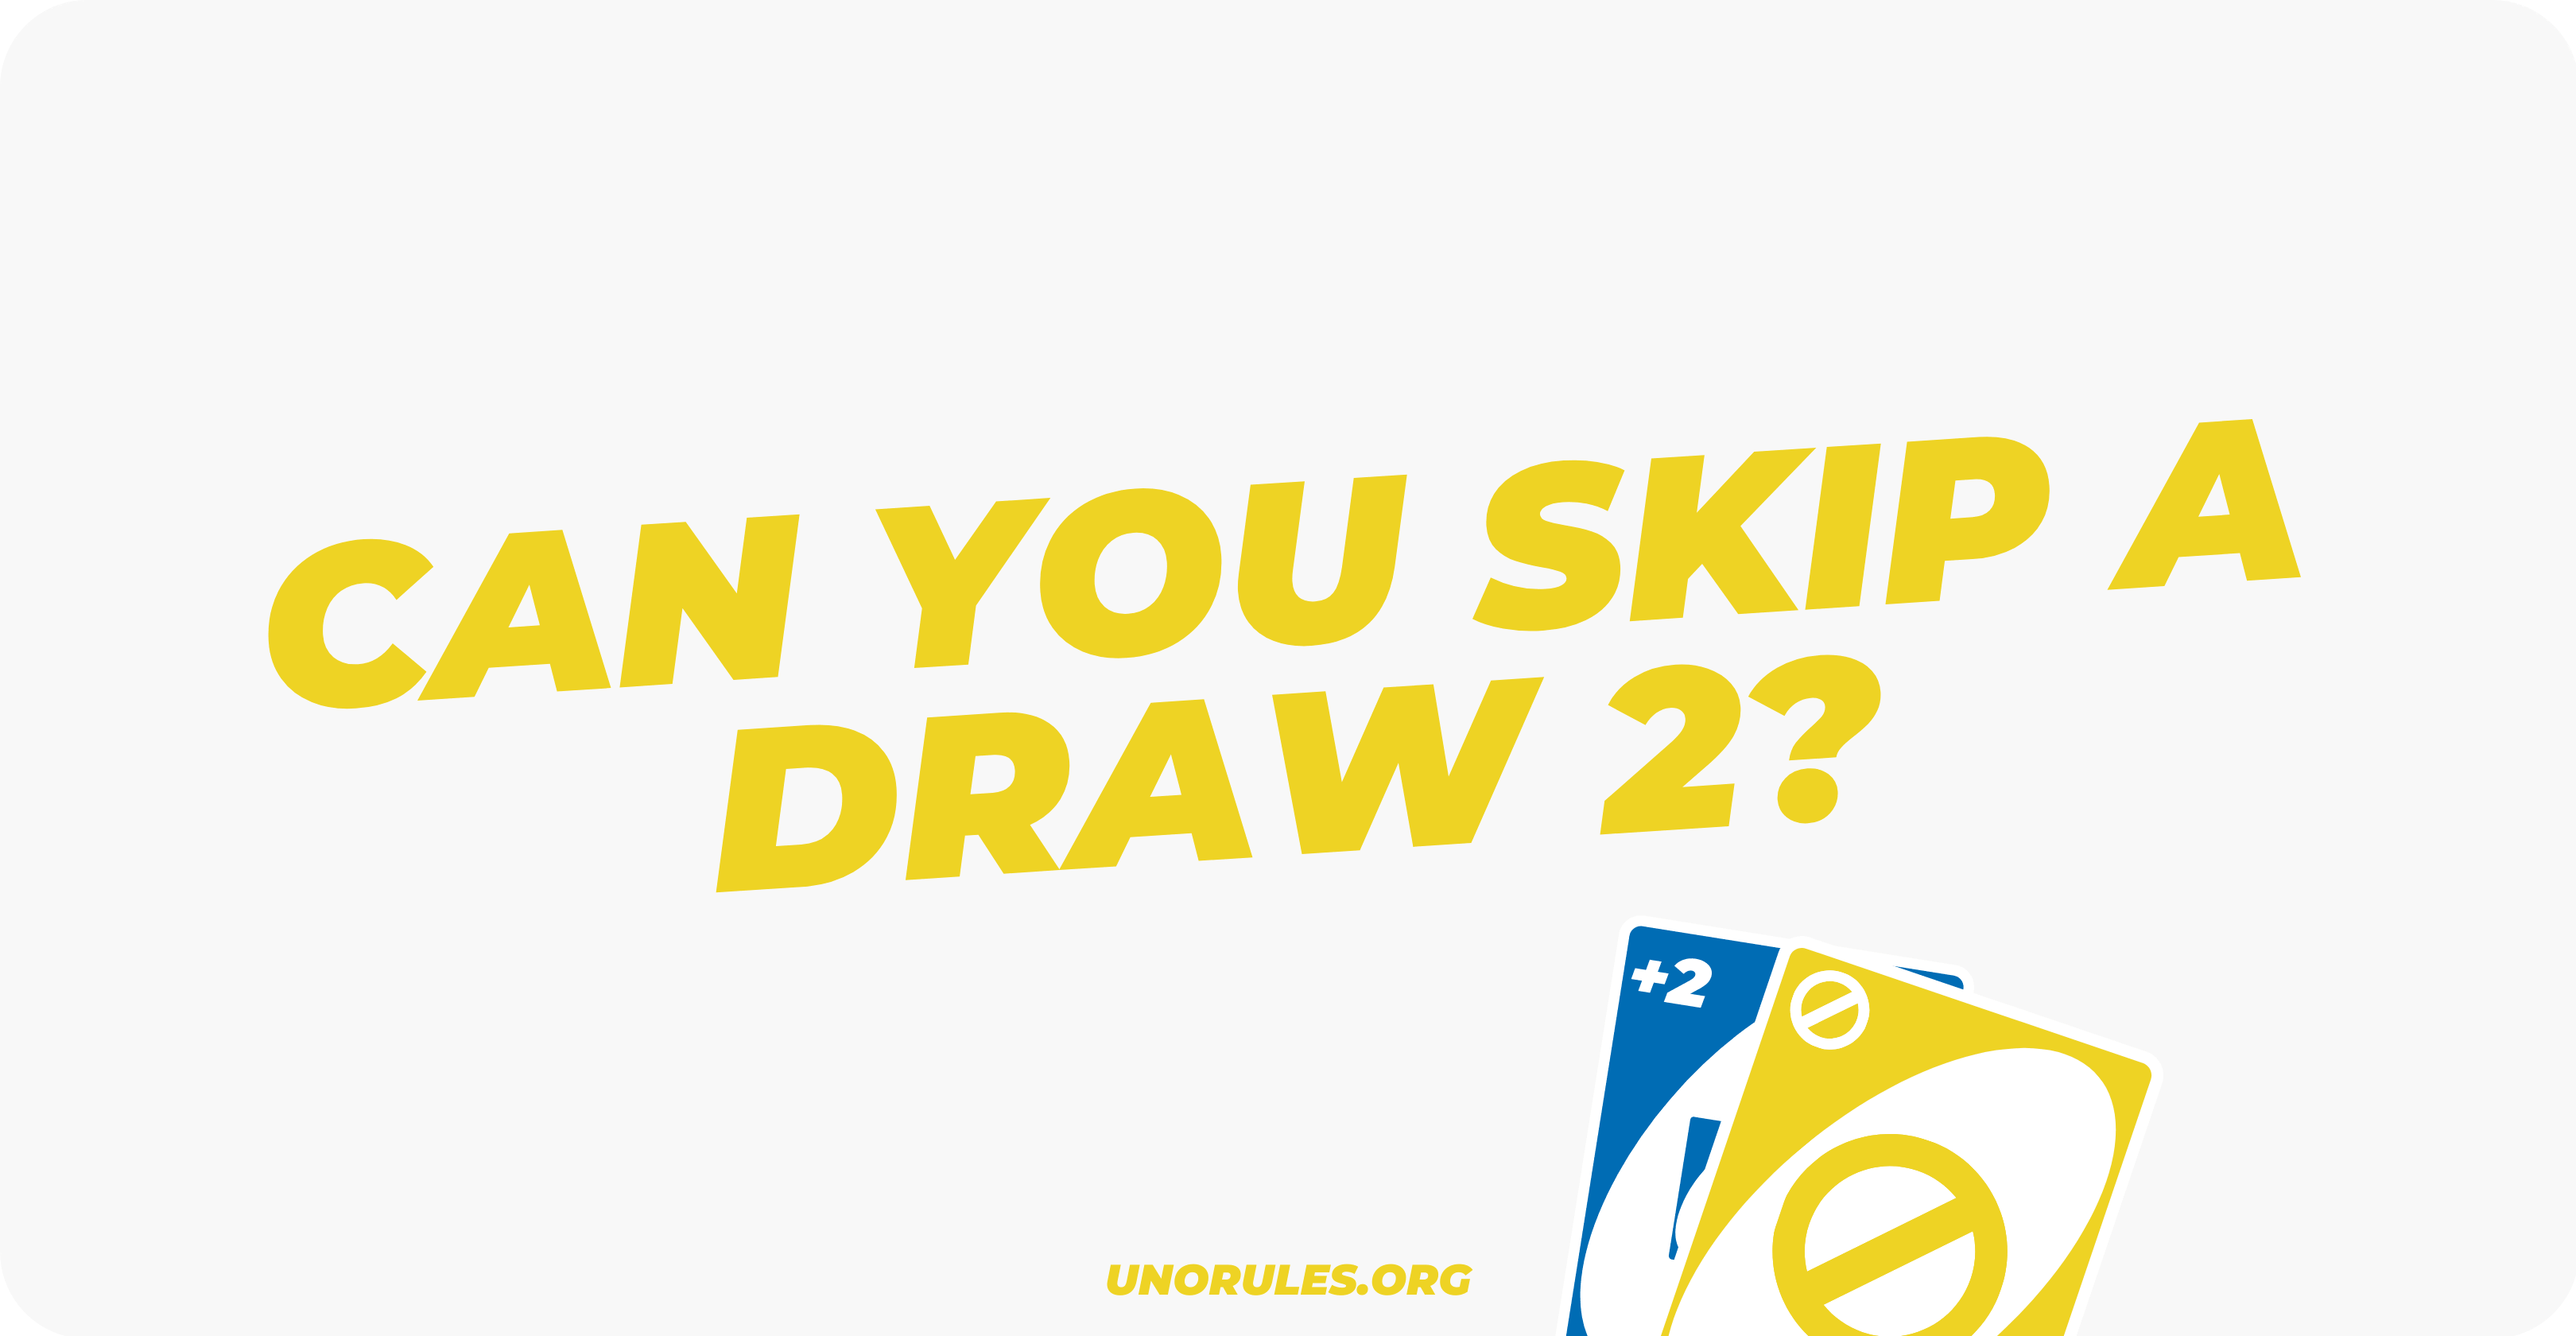 Can you skip a draw 2?